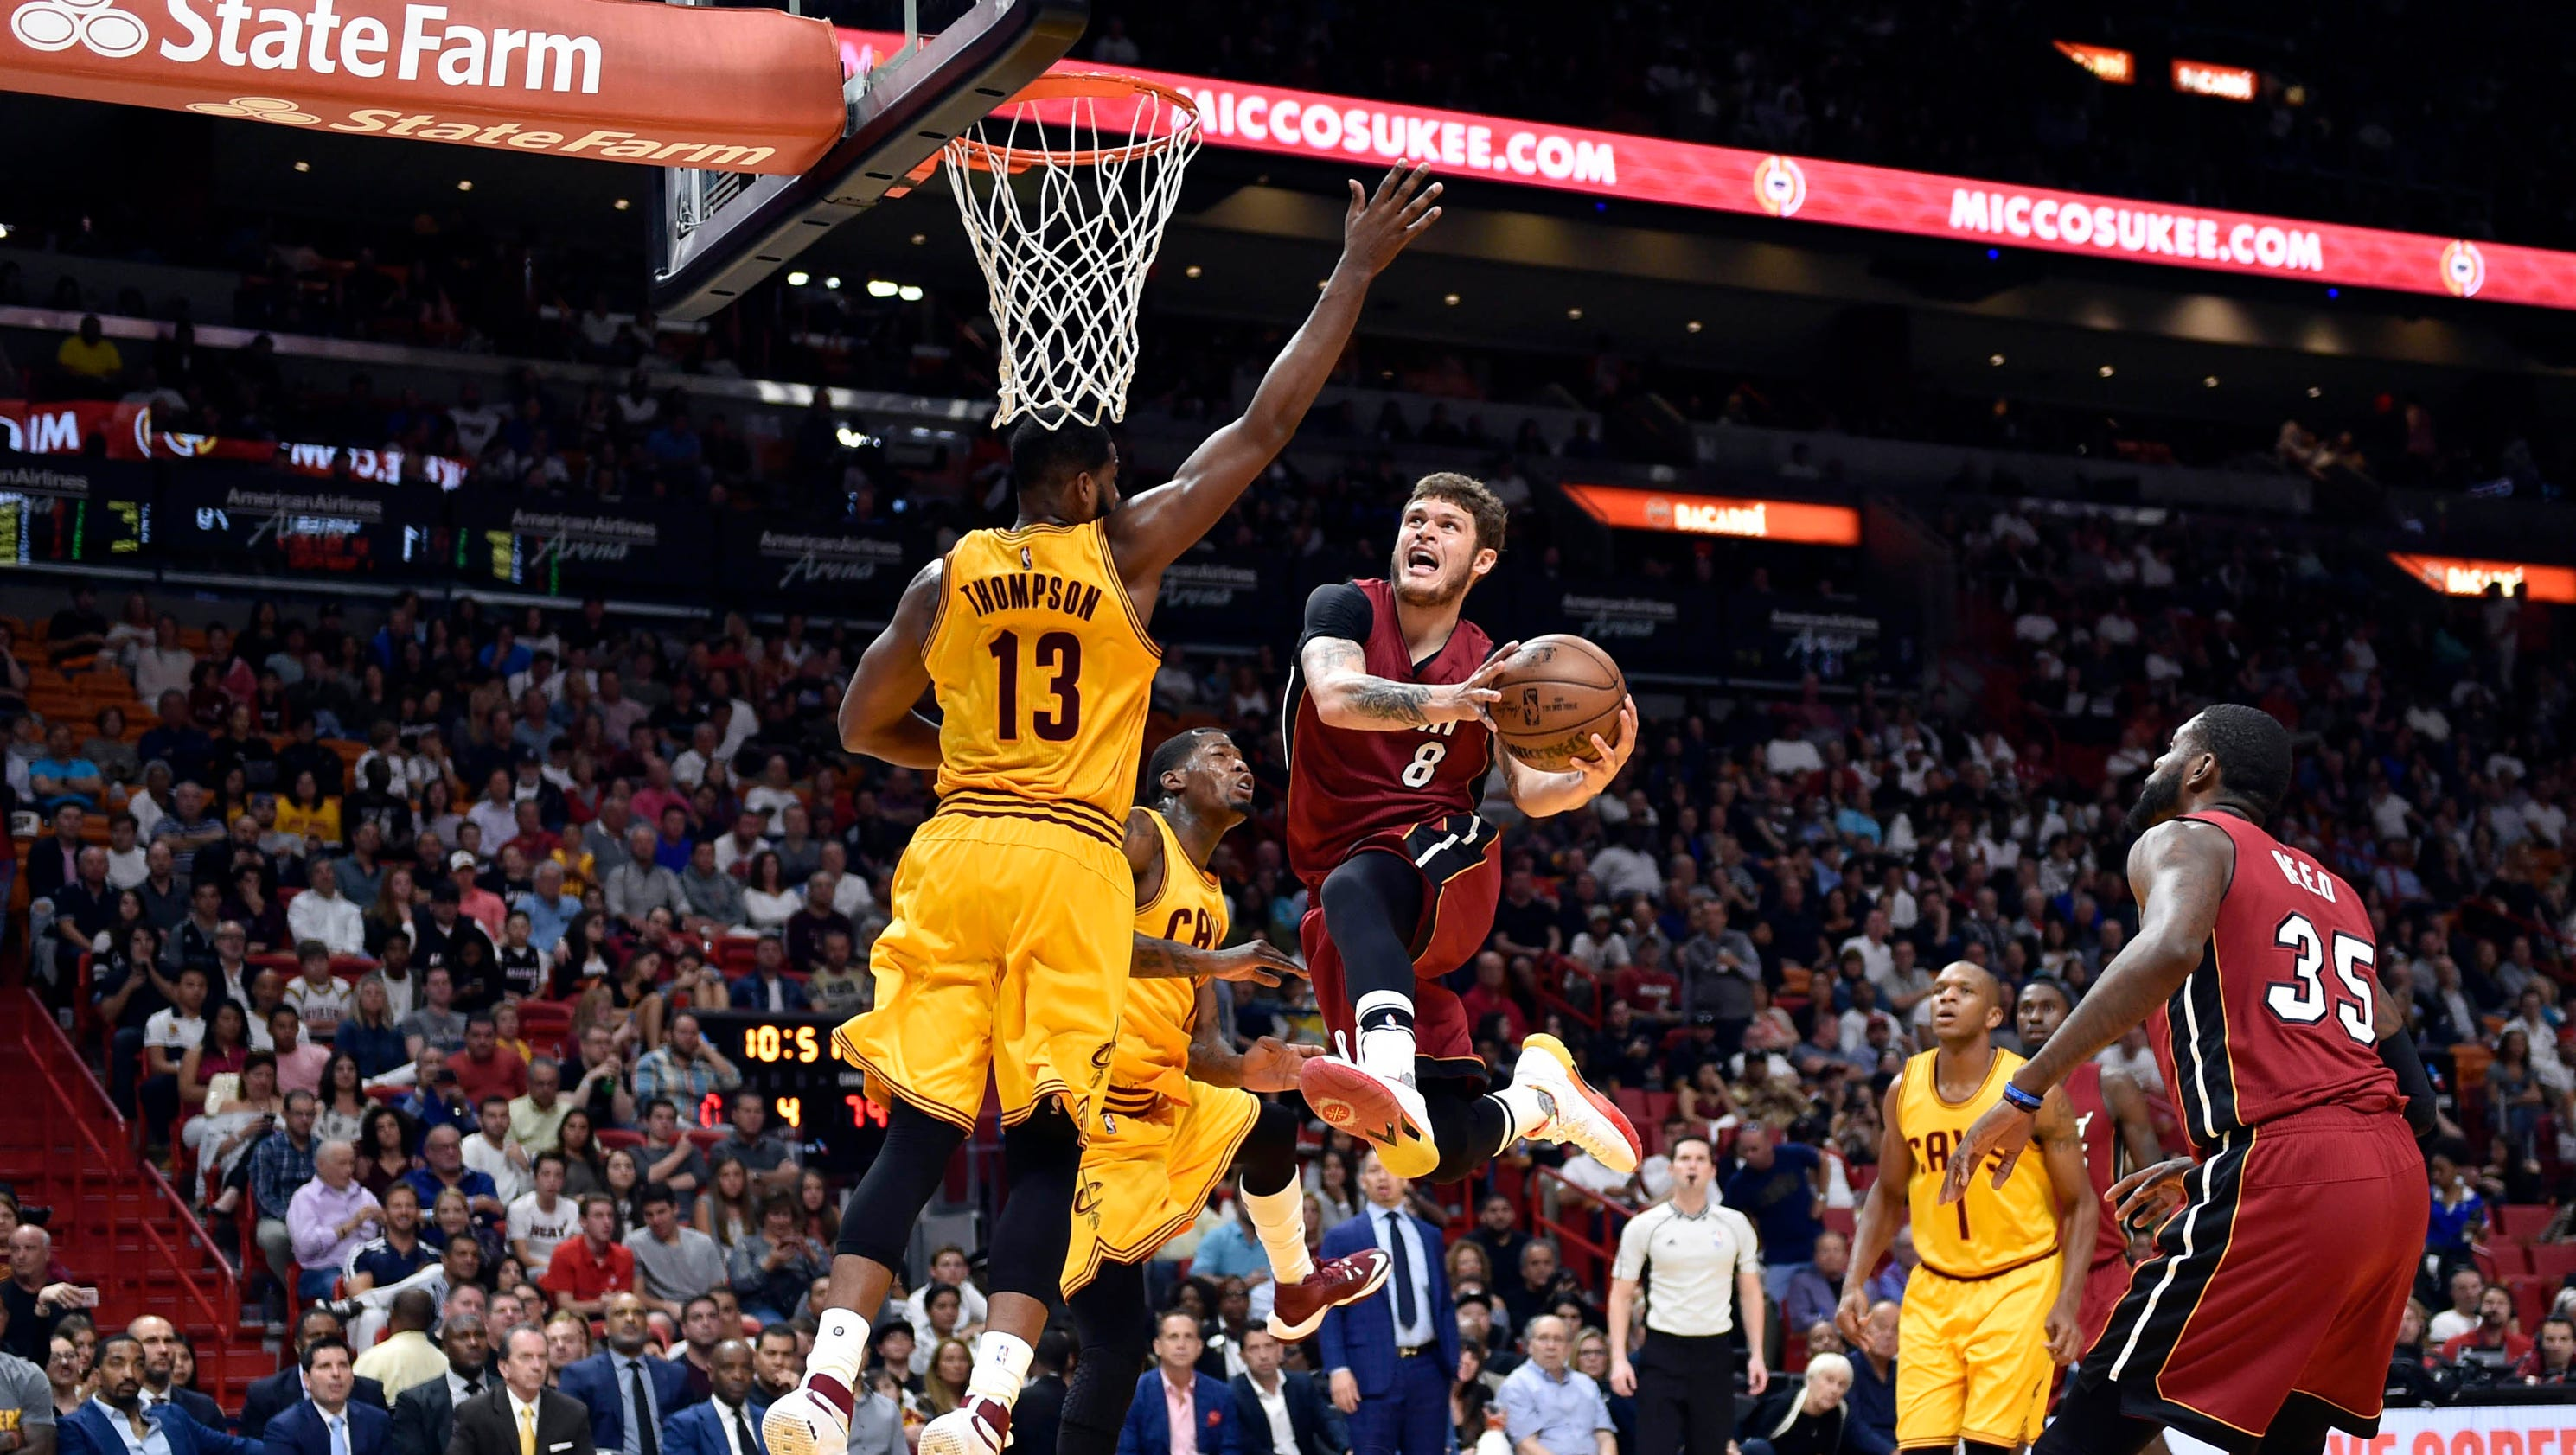 Cleveland Cavaliers: LeBron James, Kyrie Irving Rest As Cavaliers Blown Out By Heat